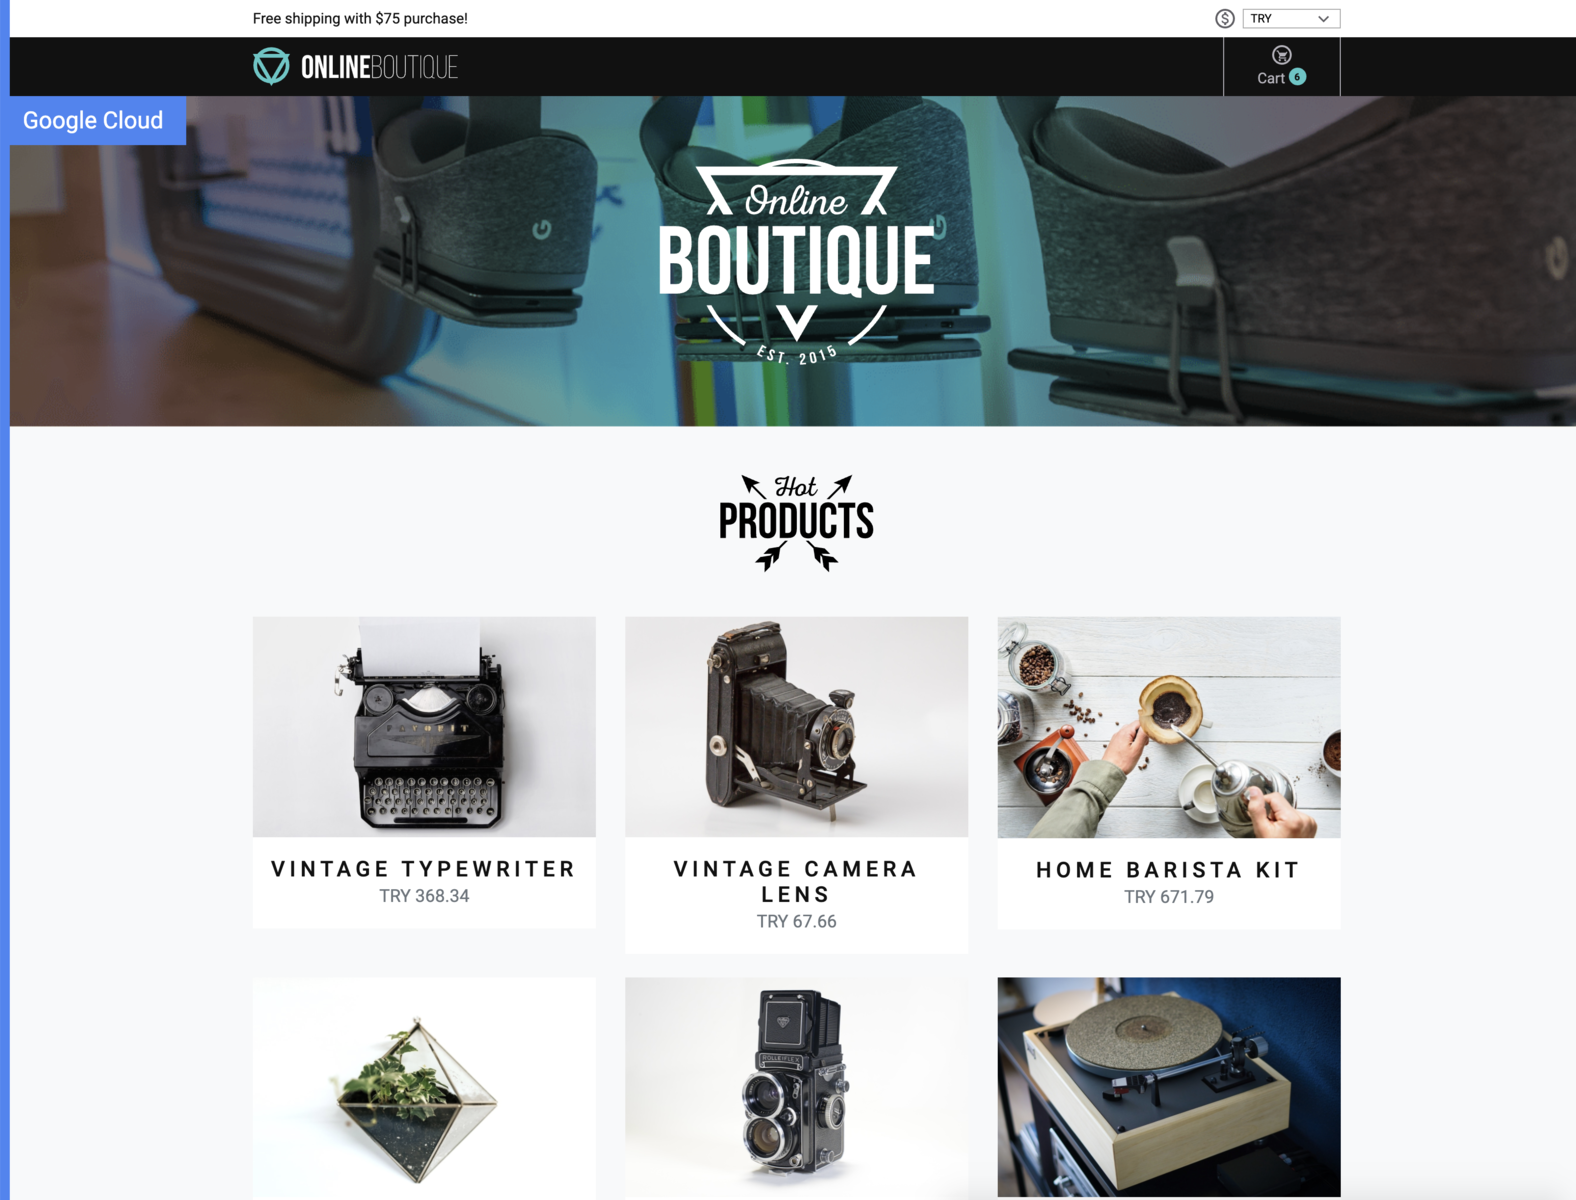 Online Boutique home page showing pictures of various products such as bikes, cameras, typewriters, and so on.